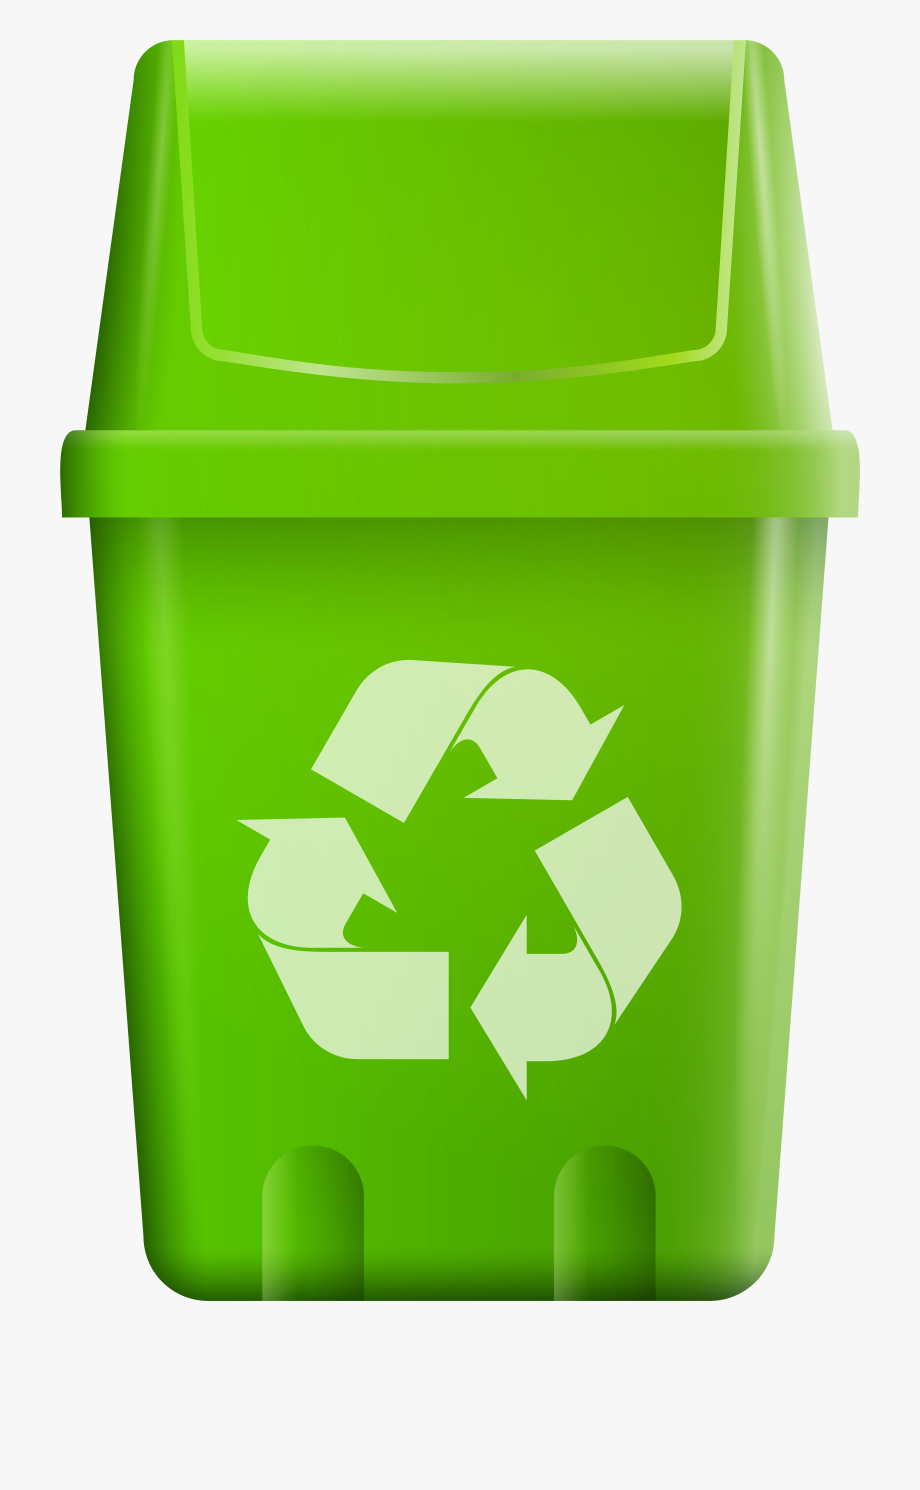 Garbage clipart recycle bin. Trash with symbol png